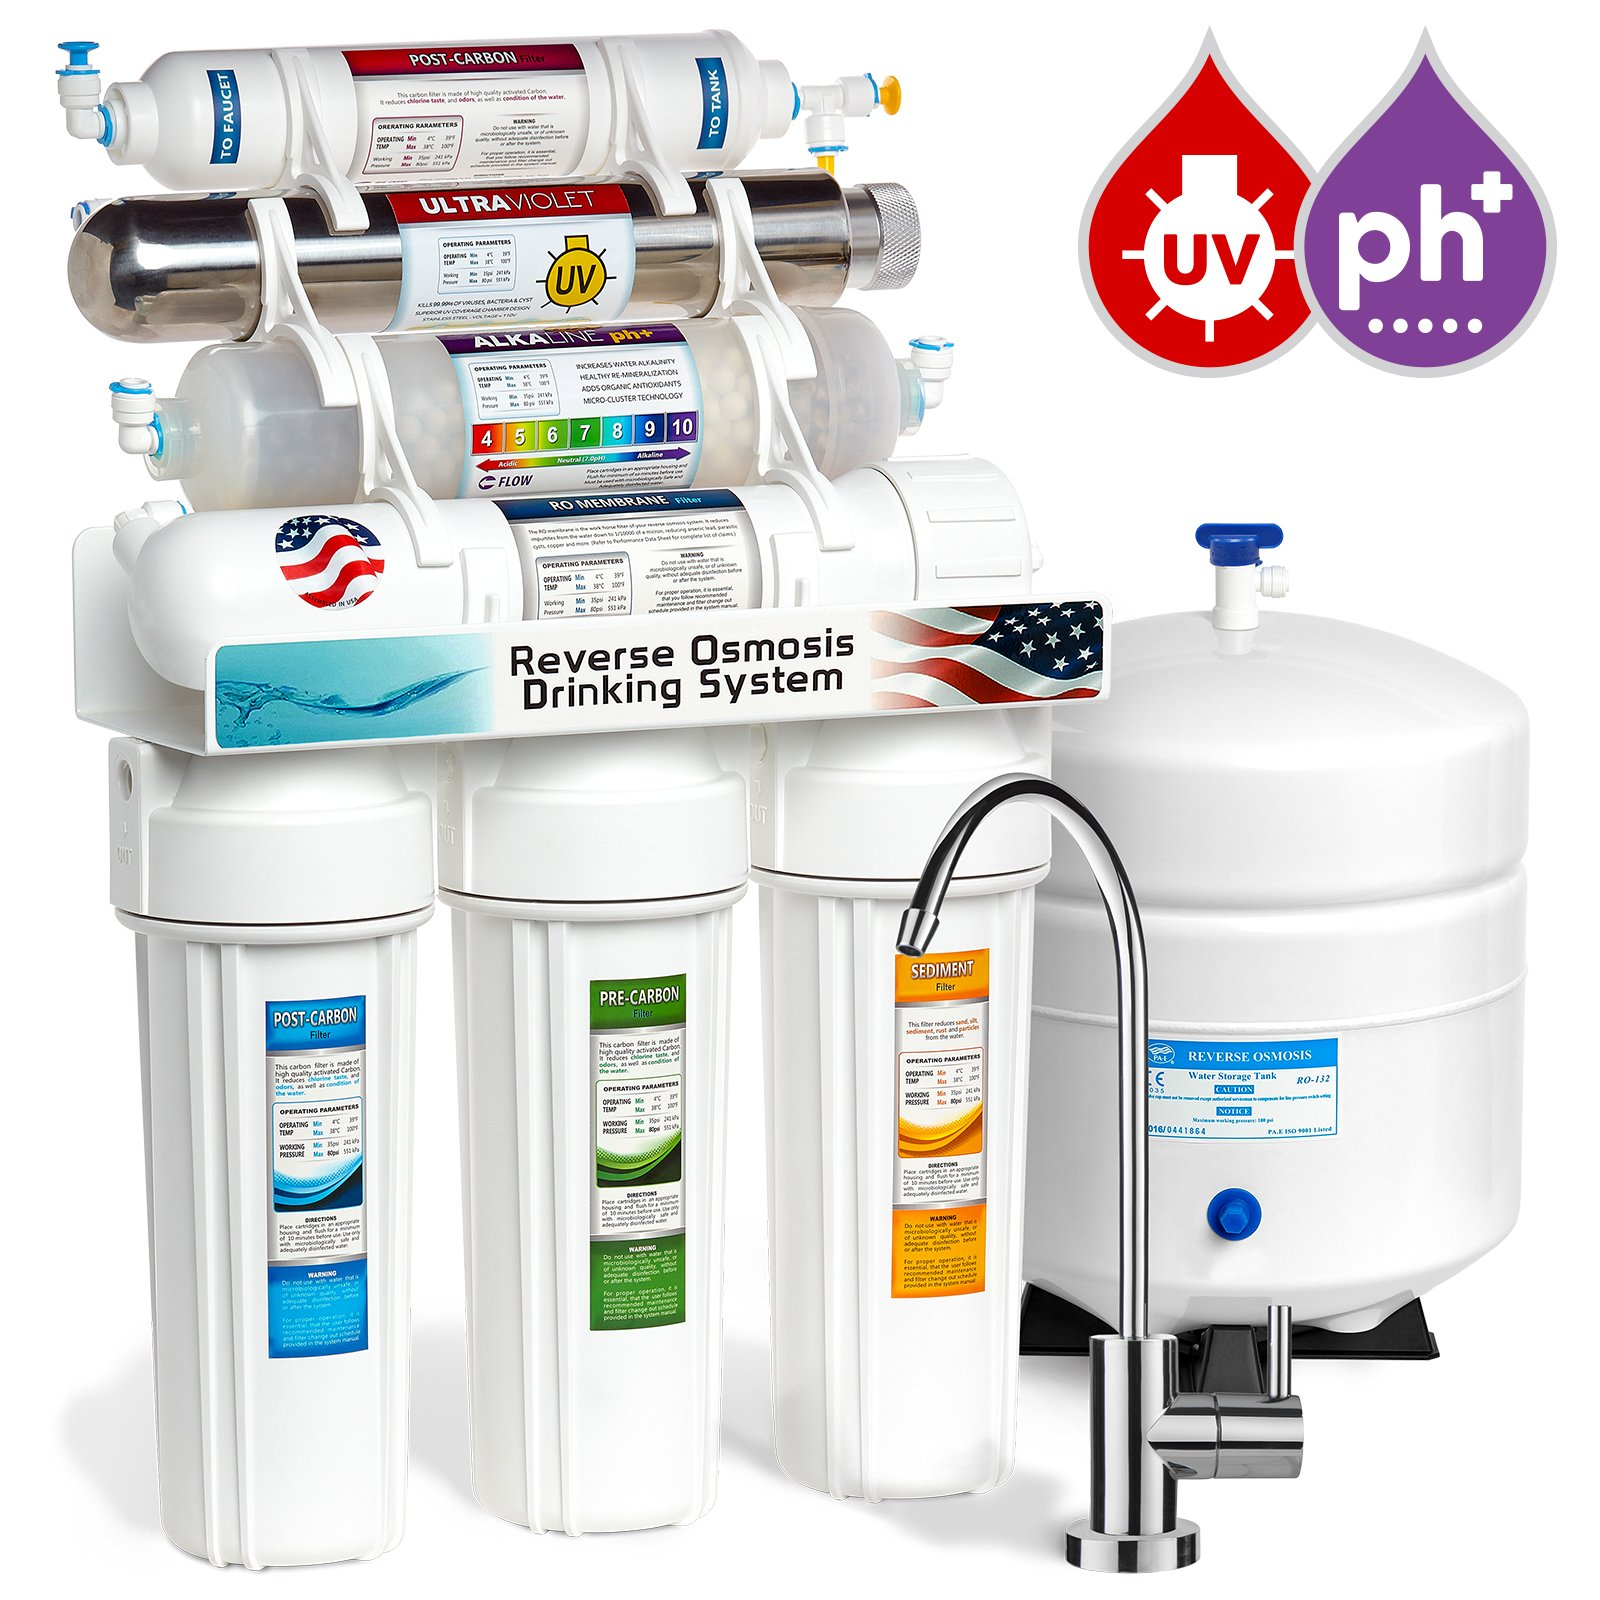 Express Water Alkaline Ultraviolet Reverse Osmosis Water Filtration System - 11 Stage RO UV Mineralizing Alkaline Purifier with Faucet and Tank - Under Sink Filter Mineral, pH + Antioxidant - 100 GDP by Express Water